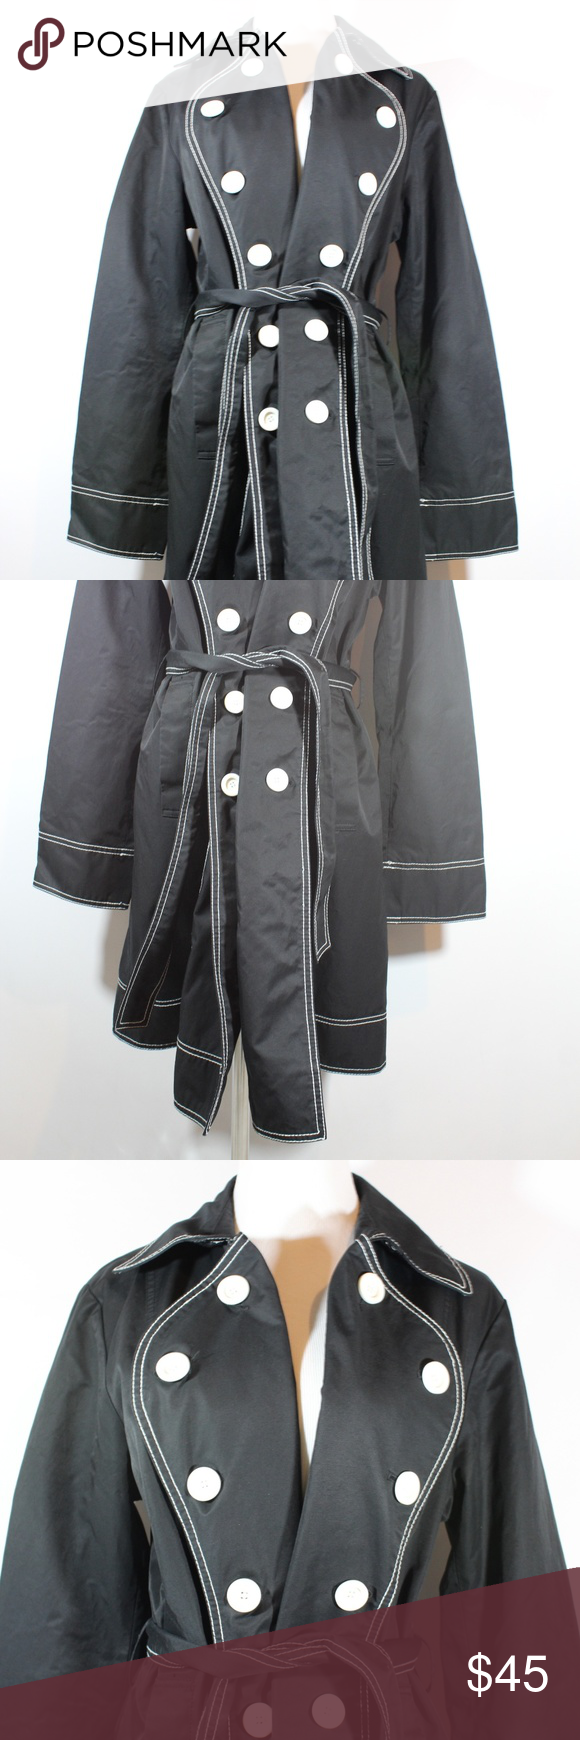 Laundry By Design Large Raincoat Trench Coat Black Trench Coat Black Trench Coat Rain Trench Coat